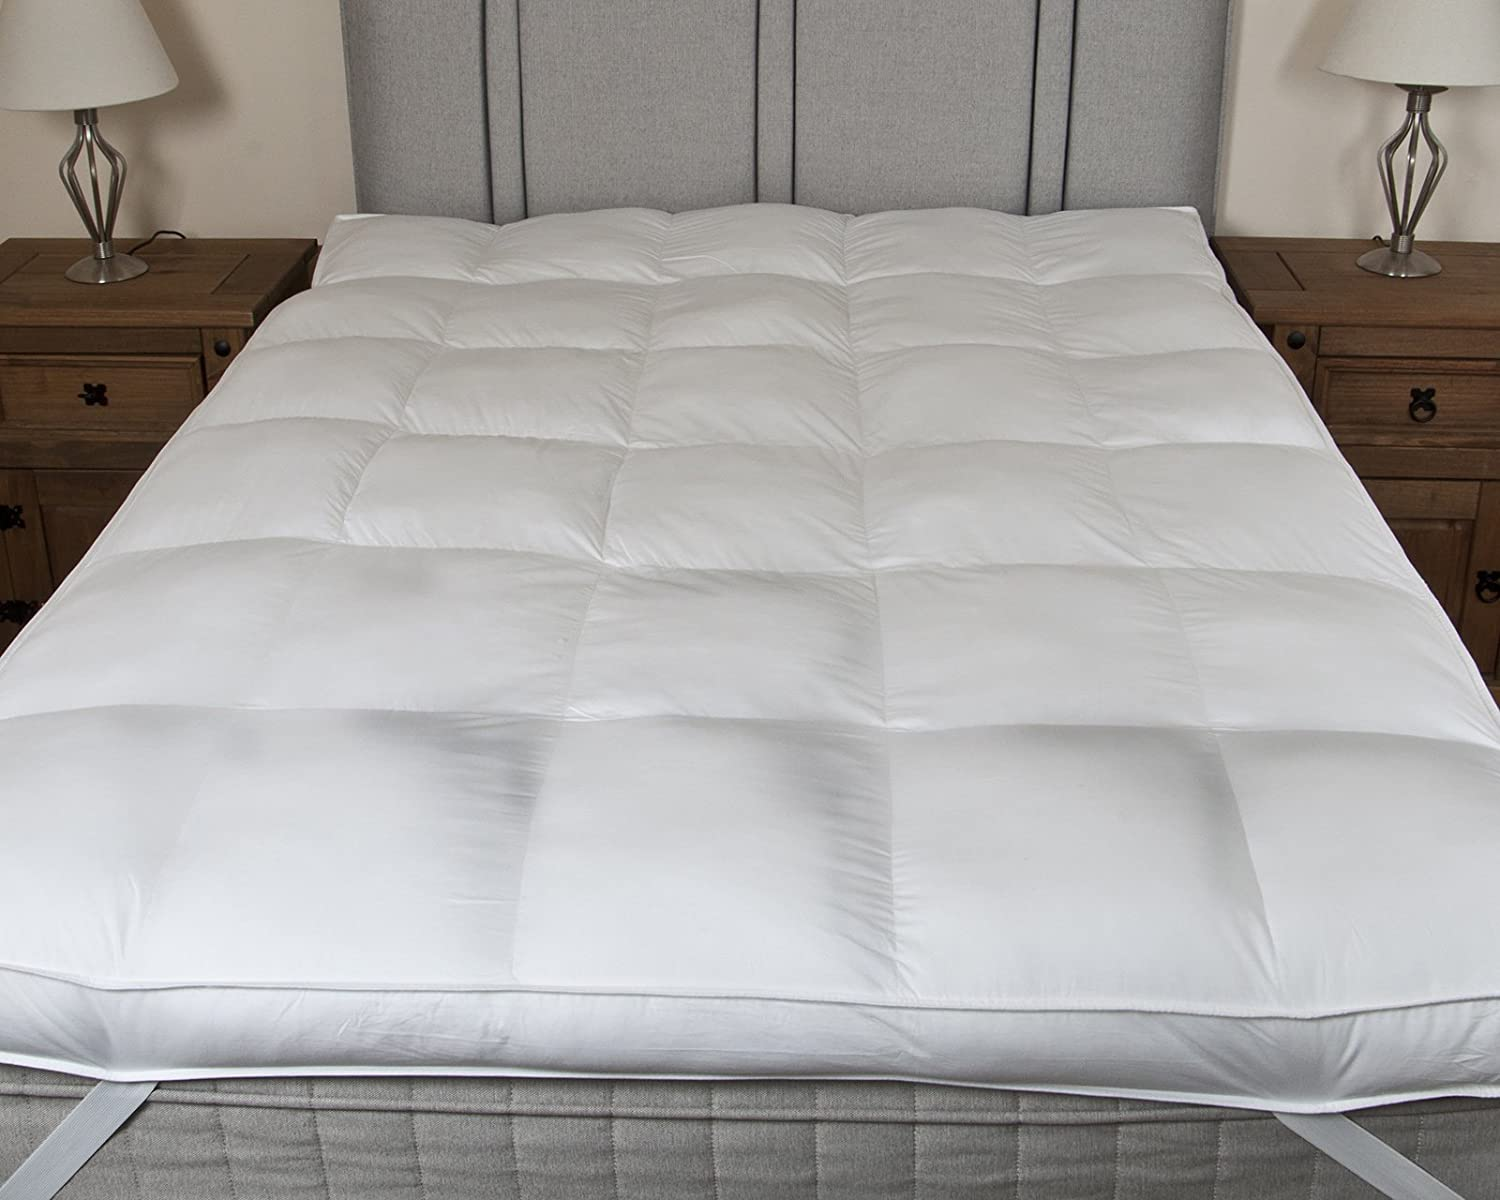 bedding direct uk hotel quality luxury 100 200tc cotton 4 inch thick mattress topper single size amazoncouk kitchen u0026 home